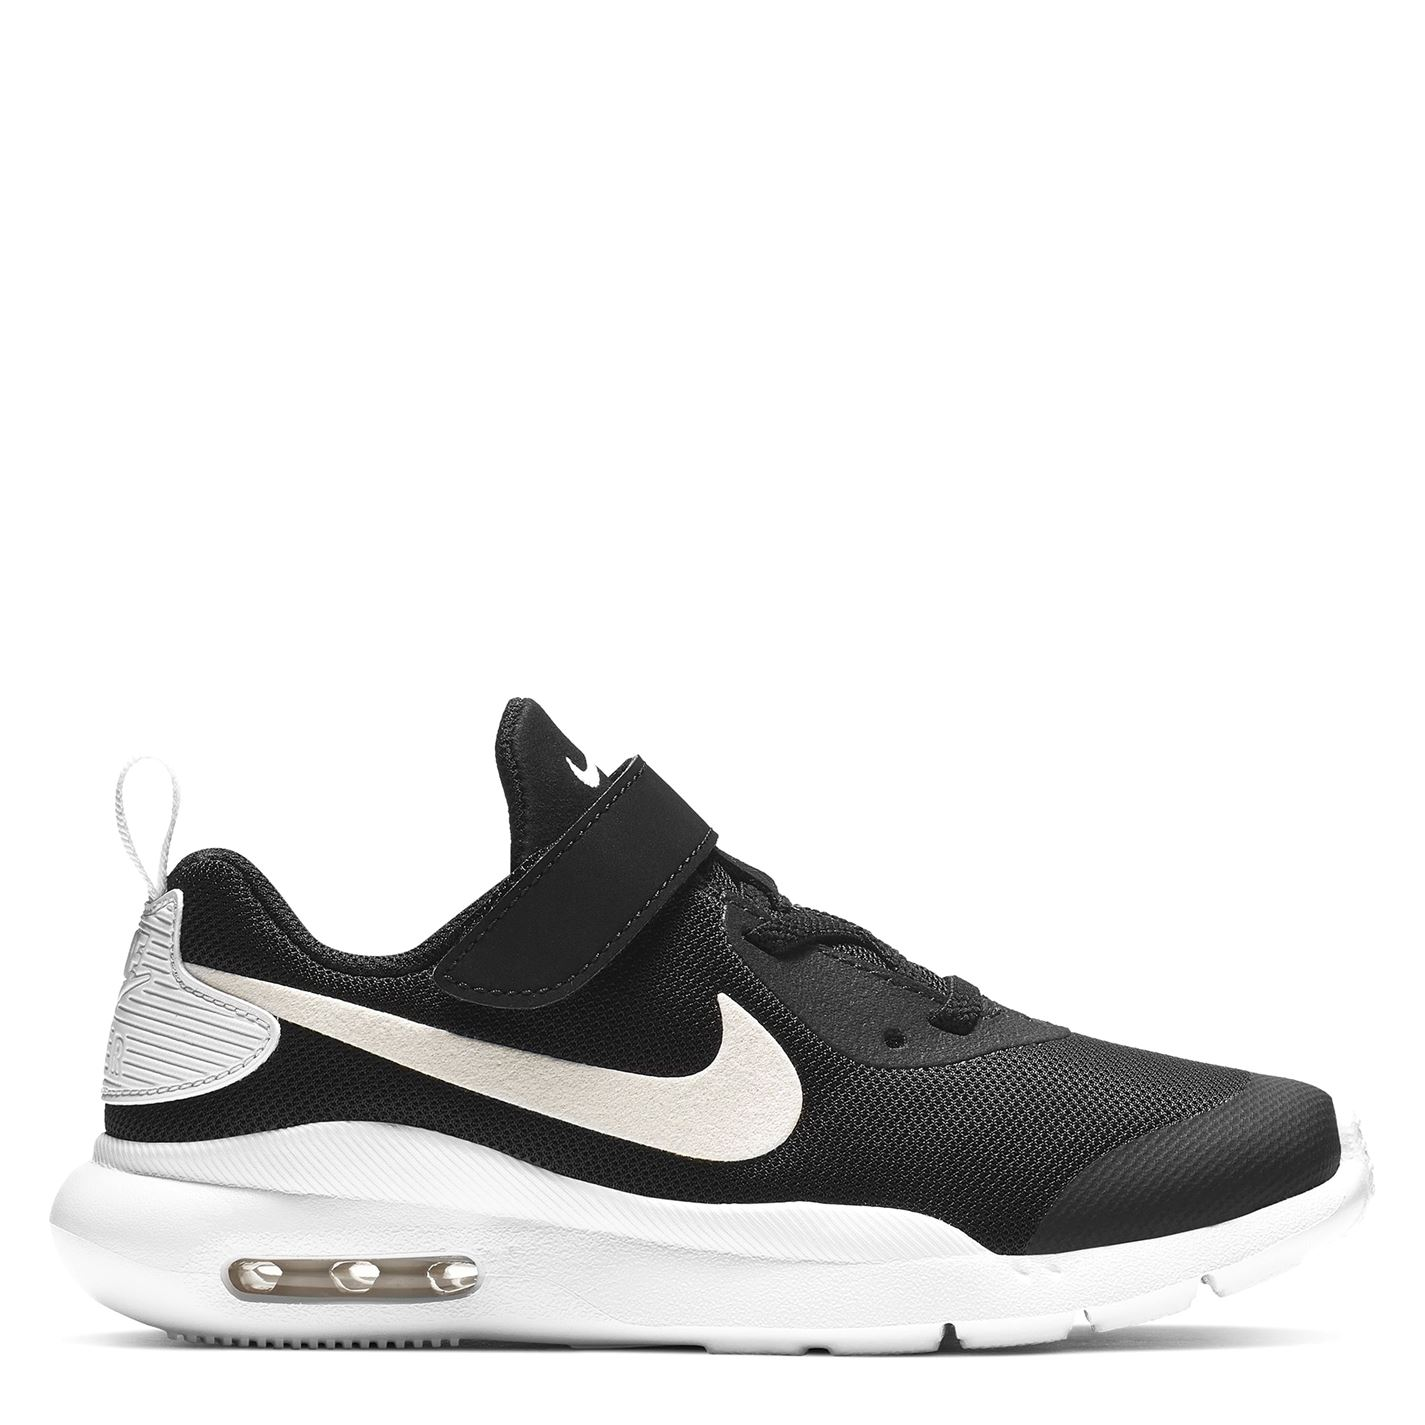 Nike Air Max Oketo Little Kids Shoe BLACK/WHITE